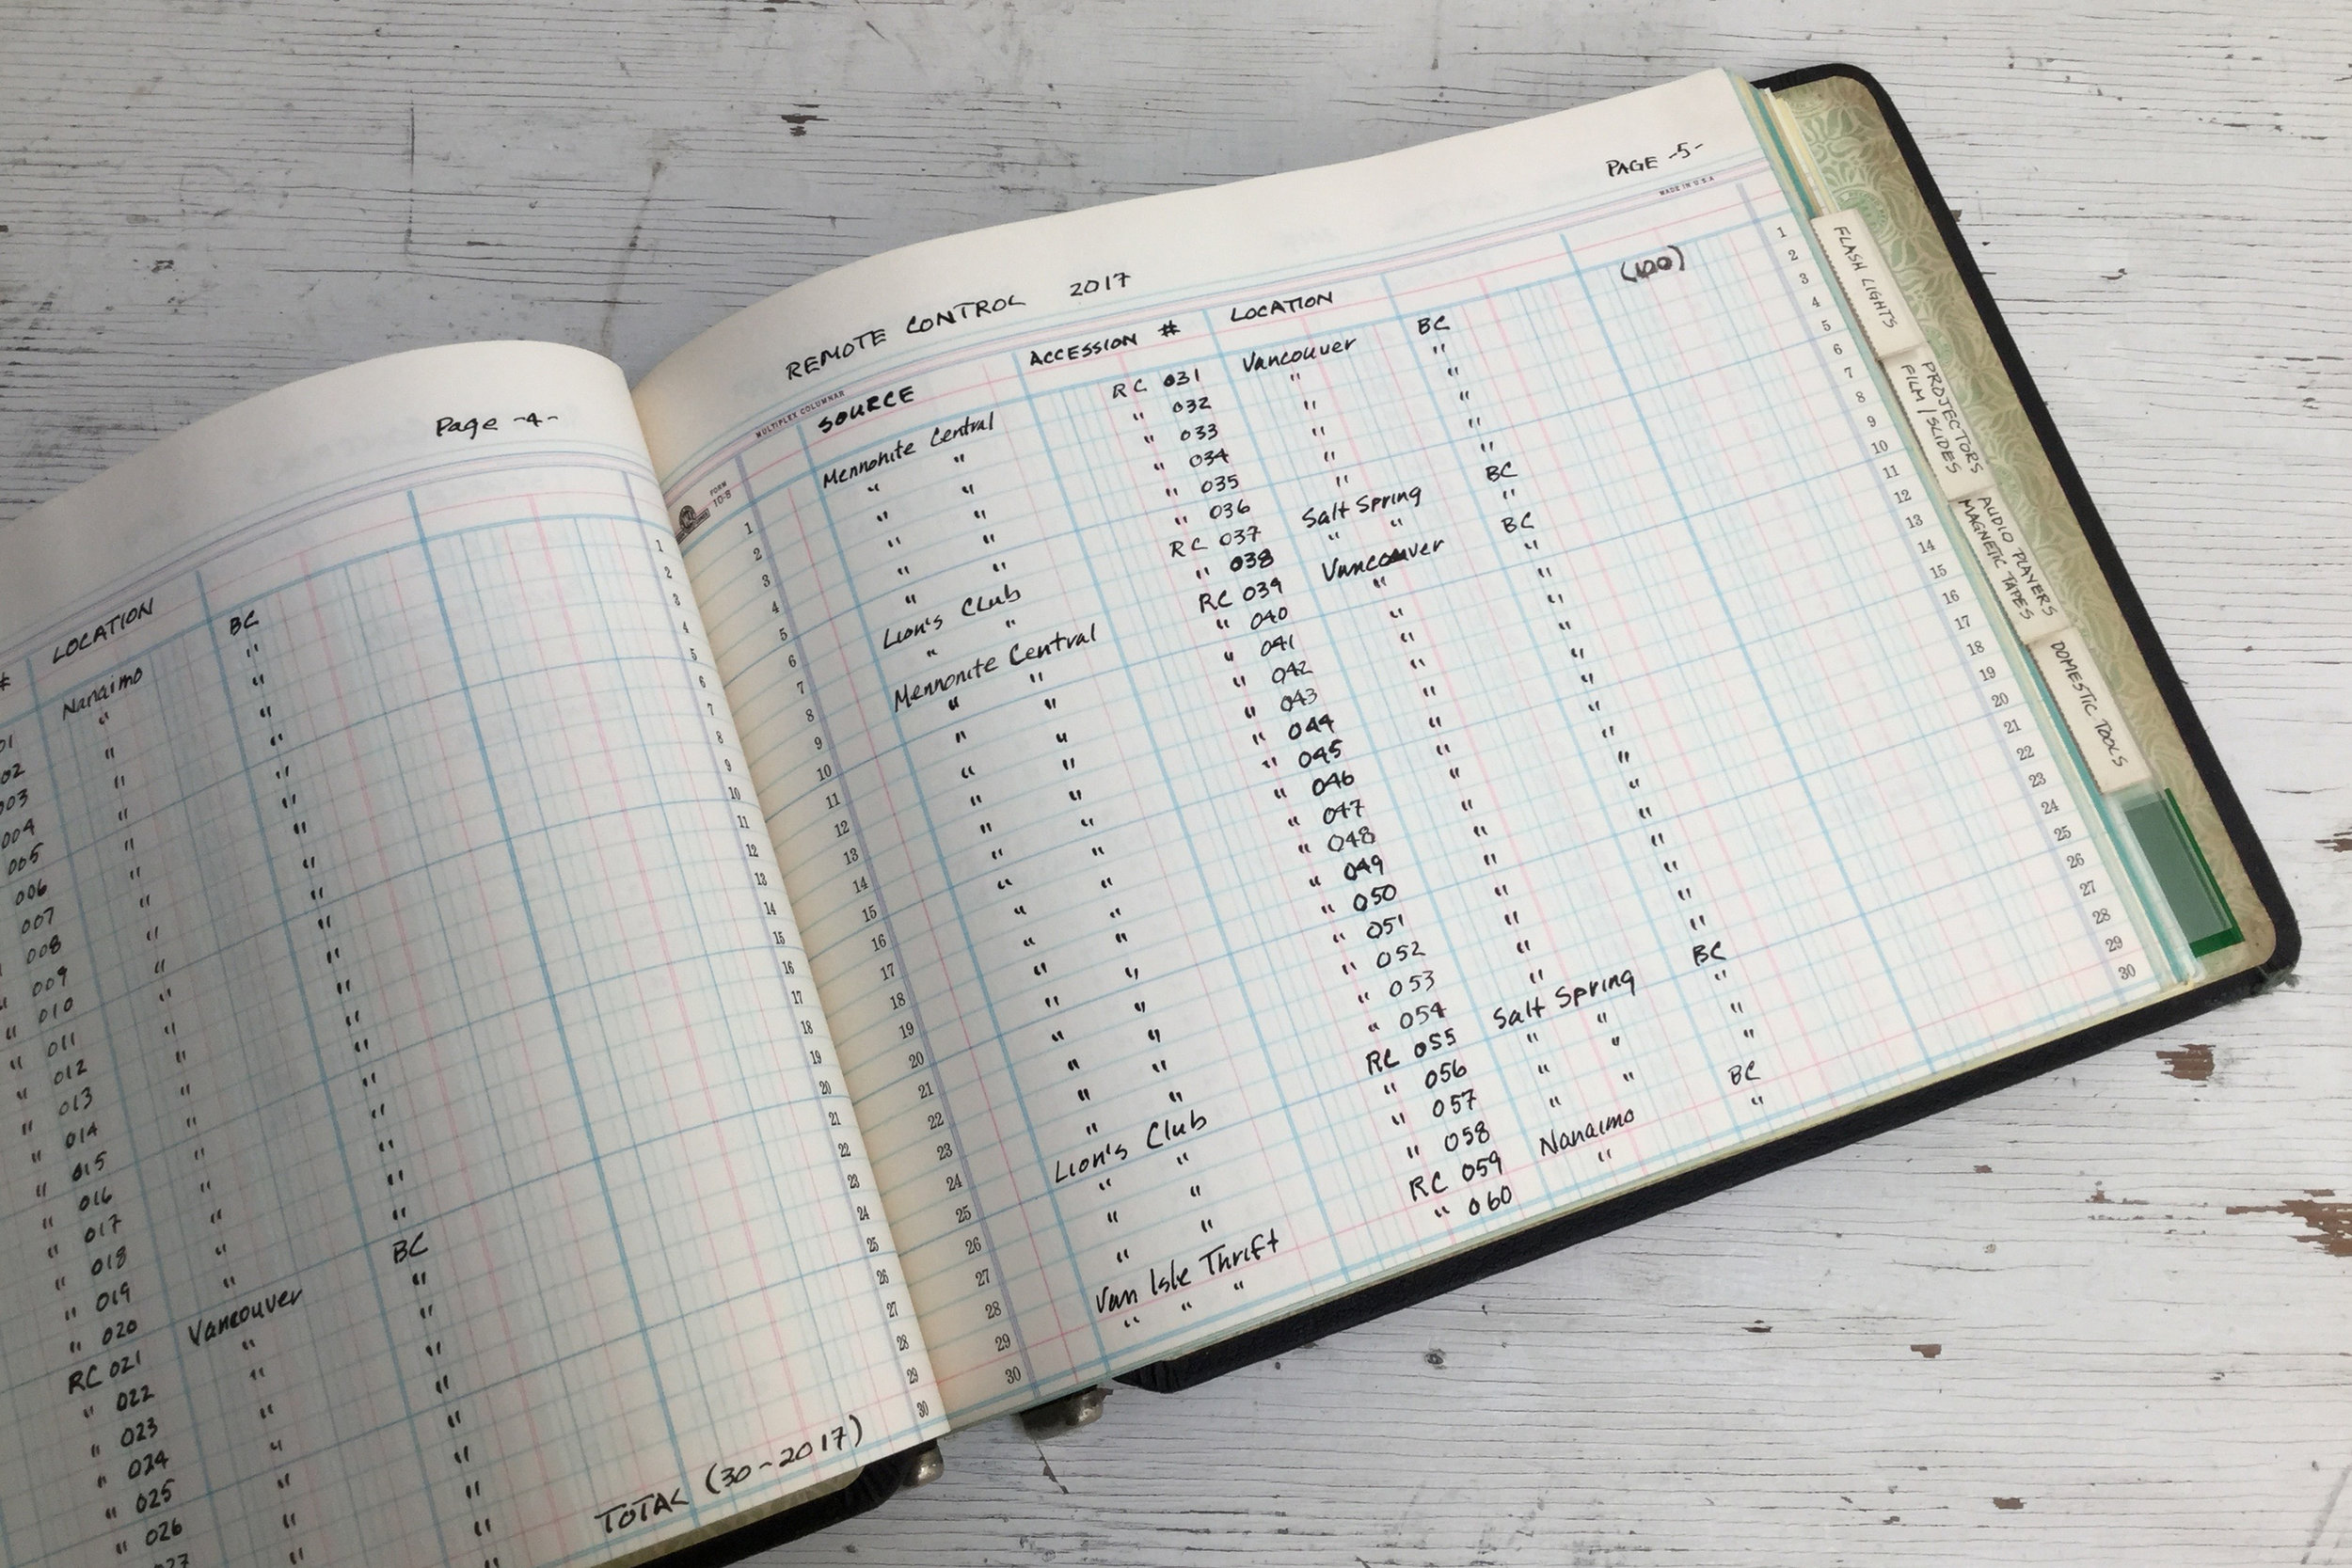 15 Object Lessons - Archive - Log Book.jpg